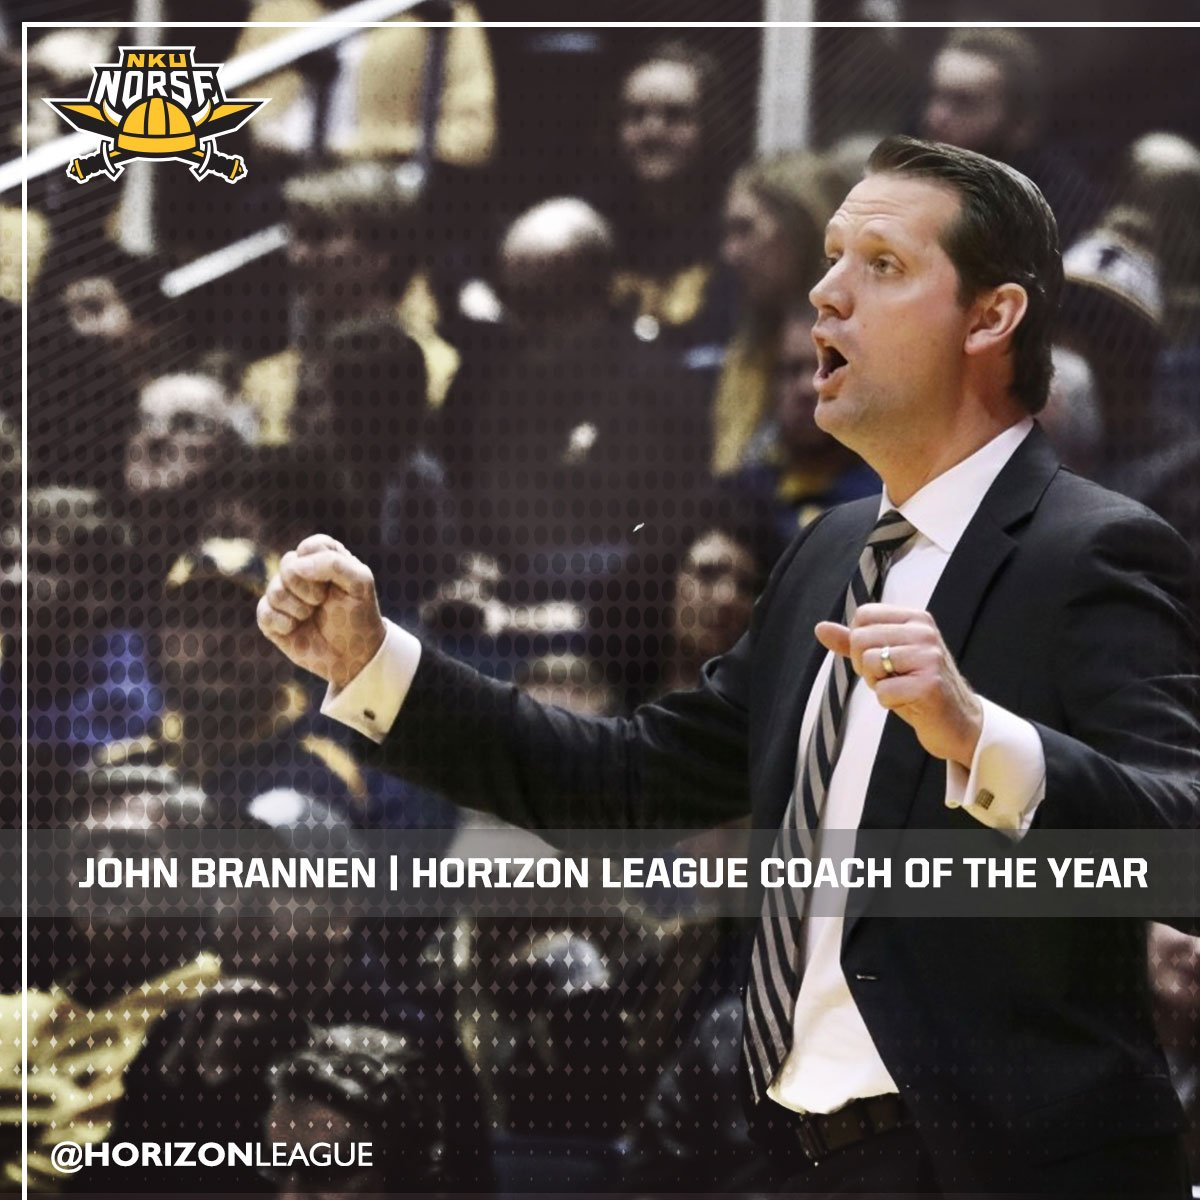 John Brannen of @NKUNorseMBB is the #HLMBB Coach of the Year